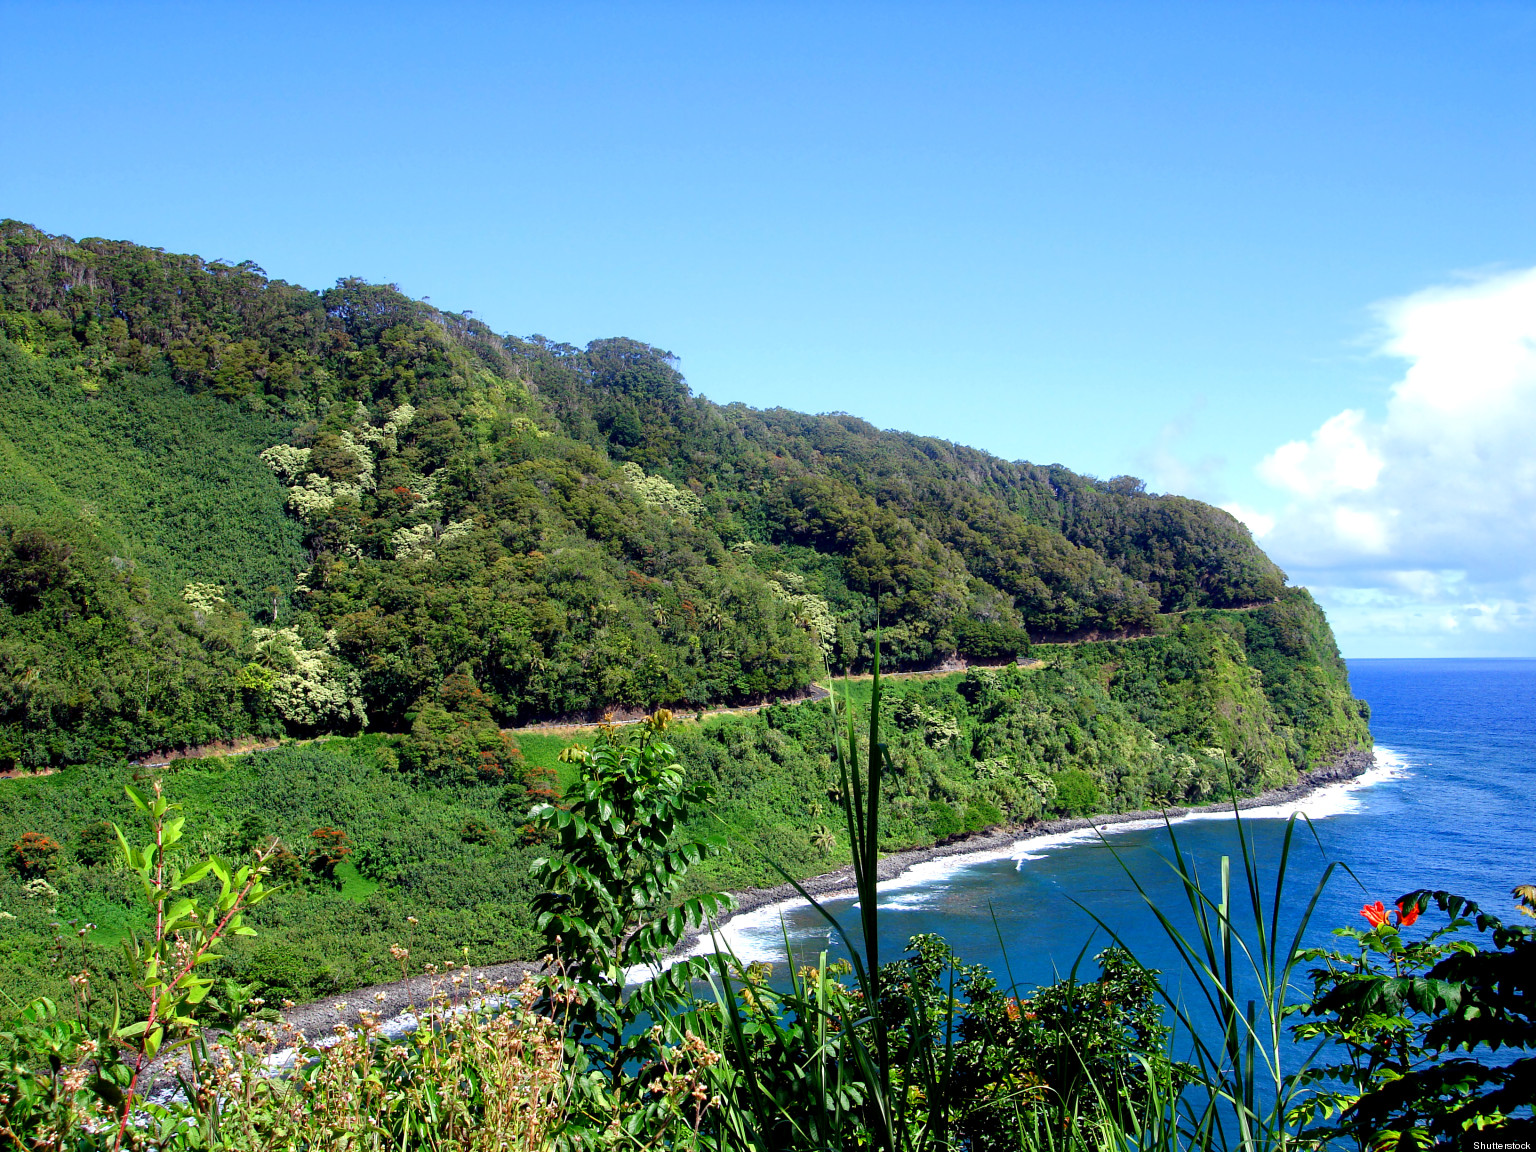 hana highway hawaii - photo #13